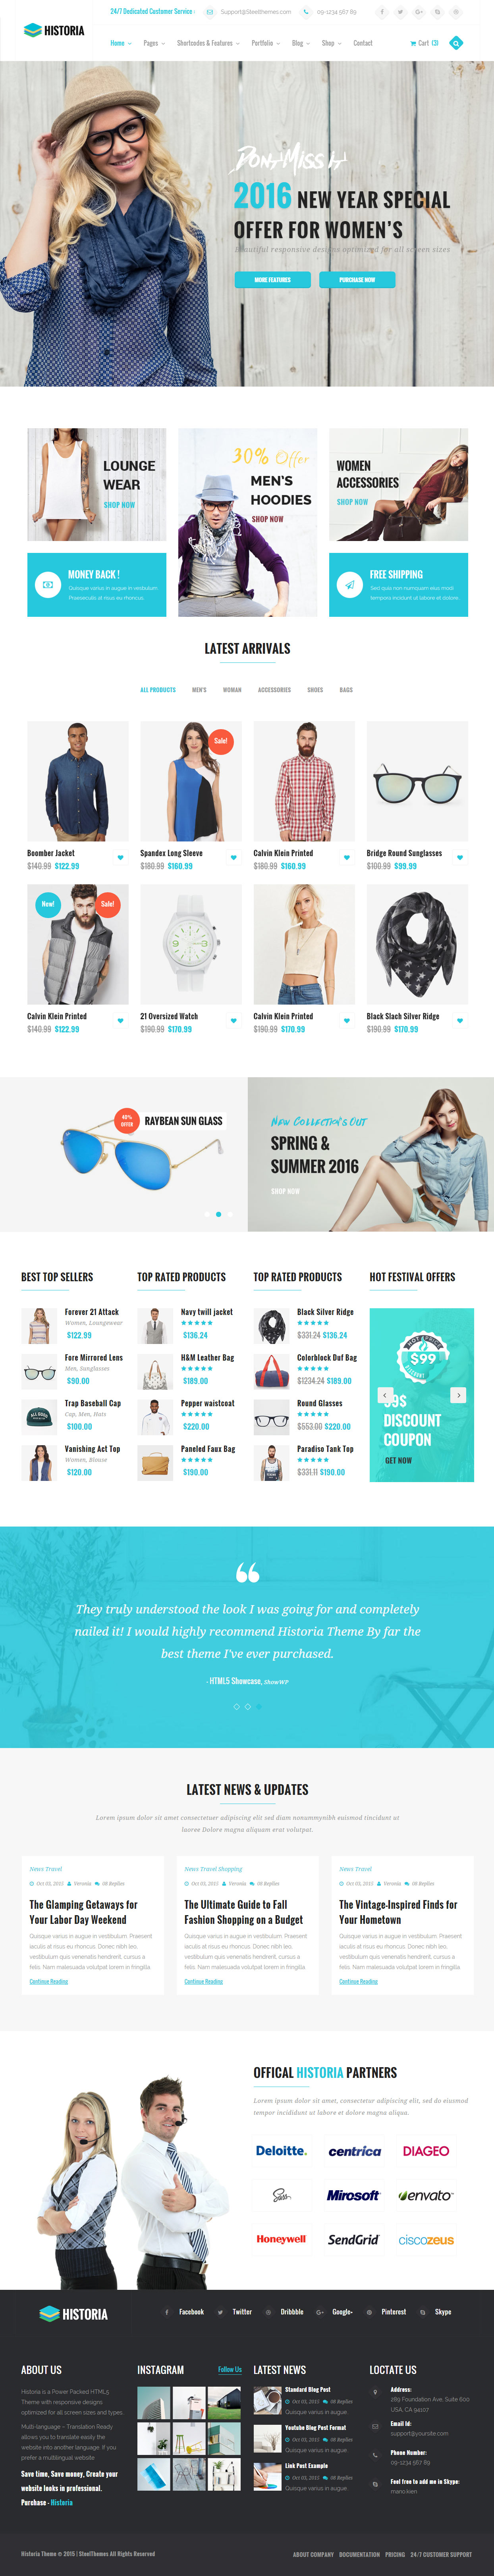 30+ Best eCommerce HTML5 Website Templates 2017 - Responsive Miracle